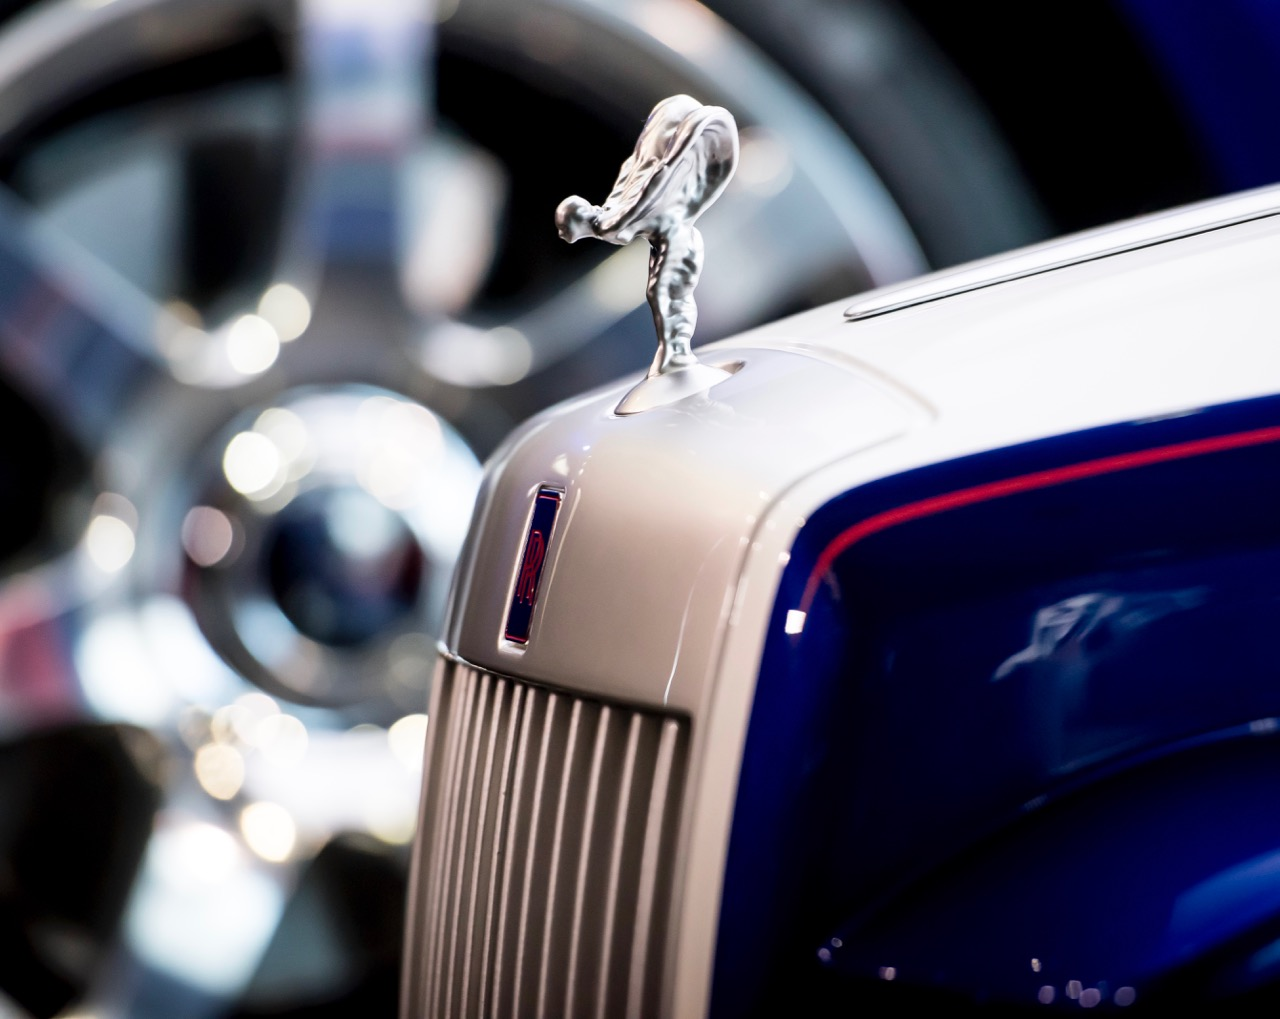 , Rolls-Royce builds its smallest, but perhaps its most special, car, ClassicCars.com Journal